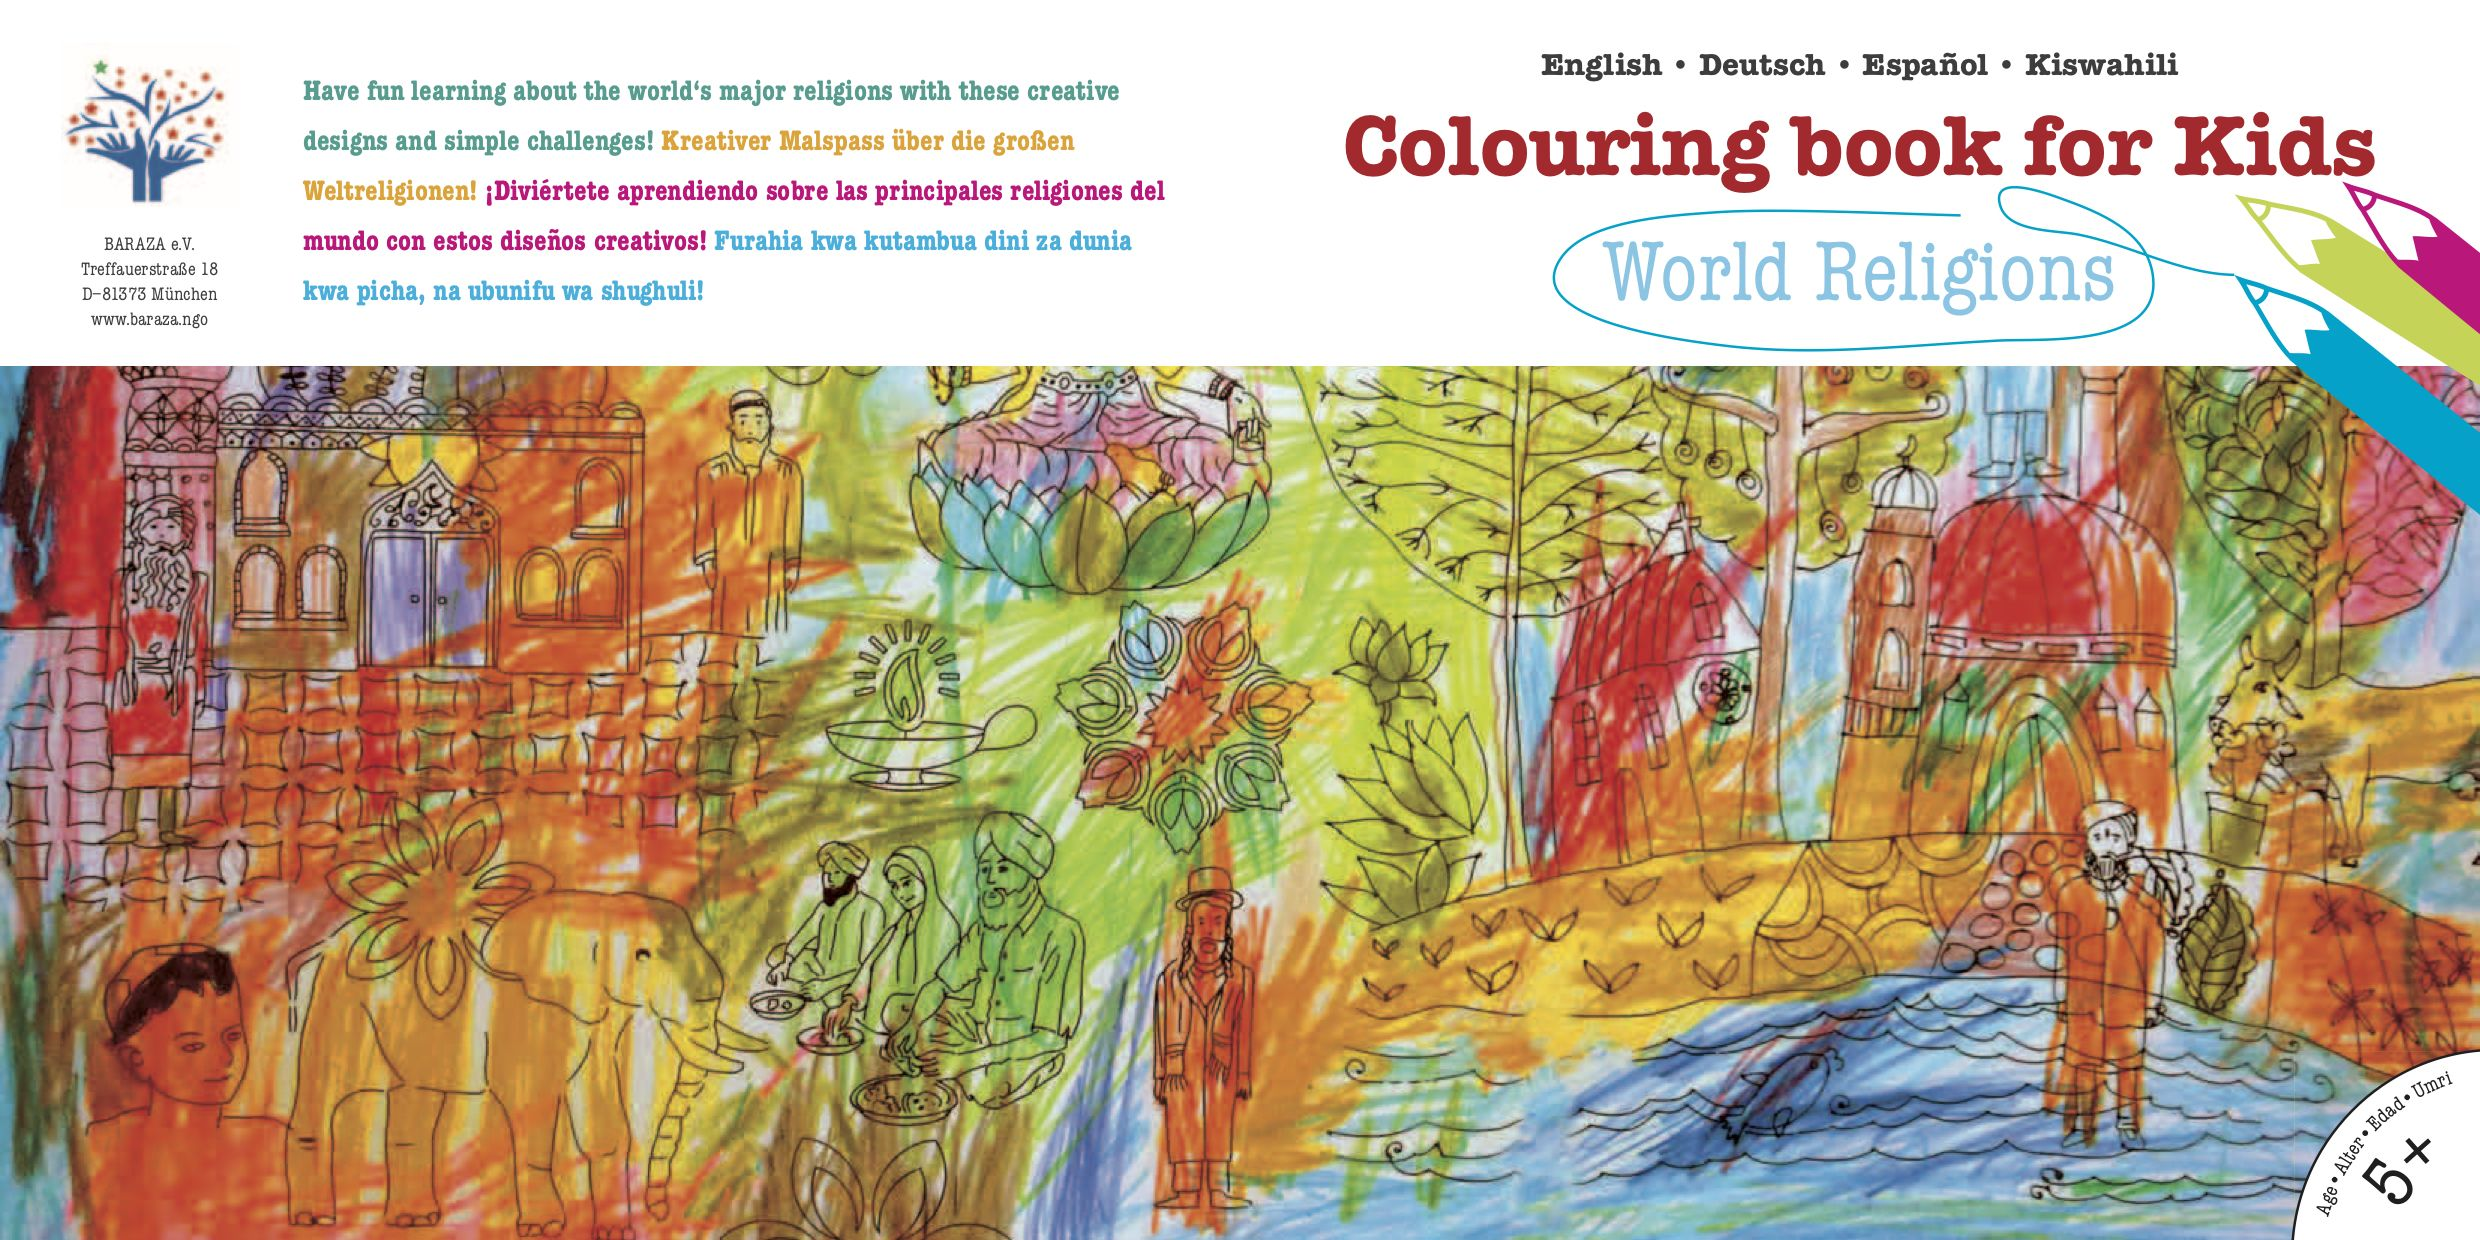 Coloring Book for Kids: World Religions | StartSomeGood